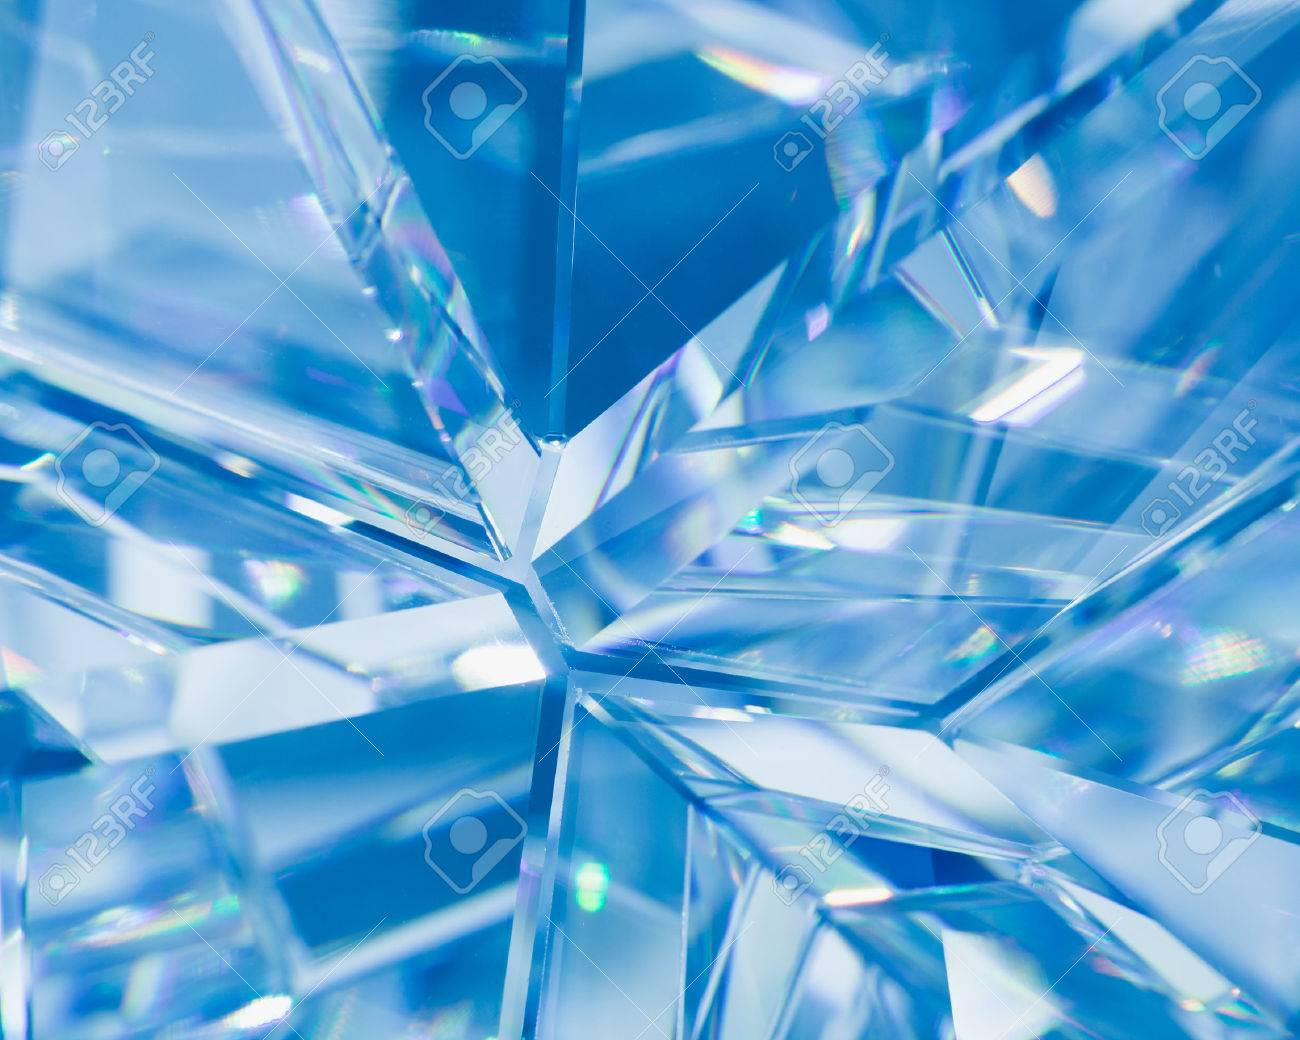 abstract blue background of crystal refractions - 44239411